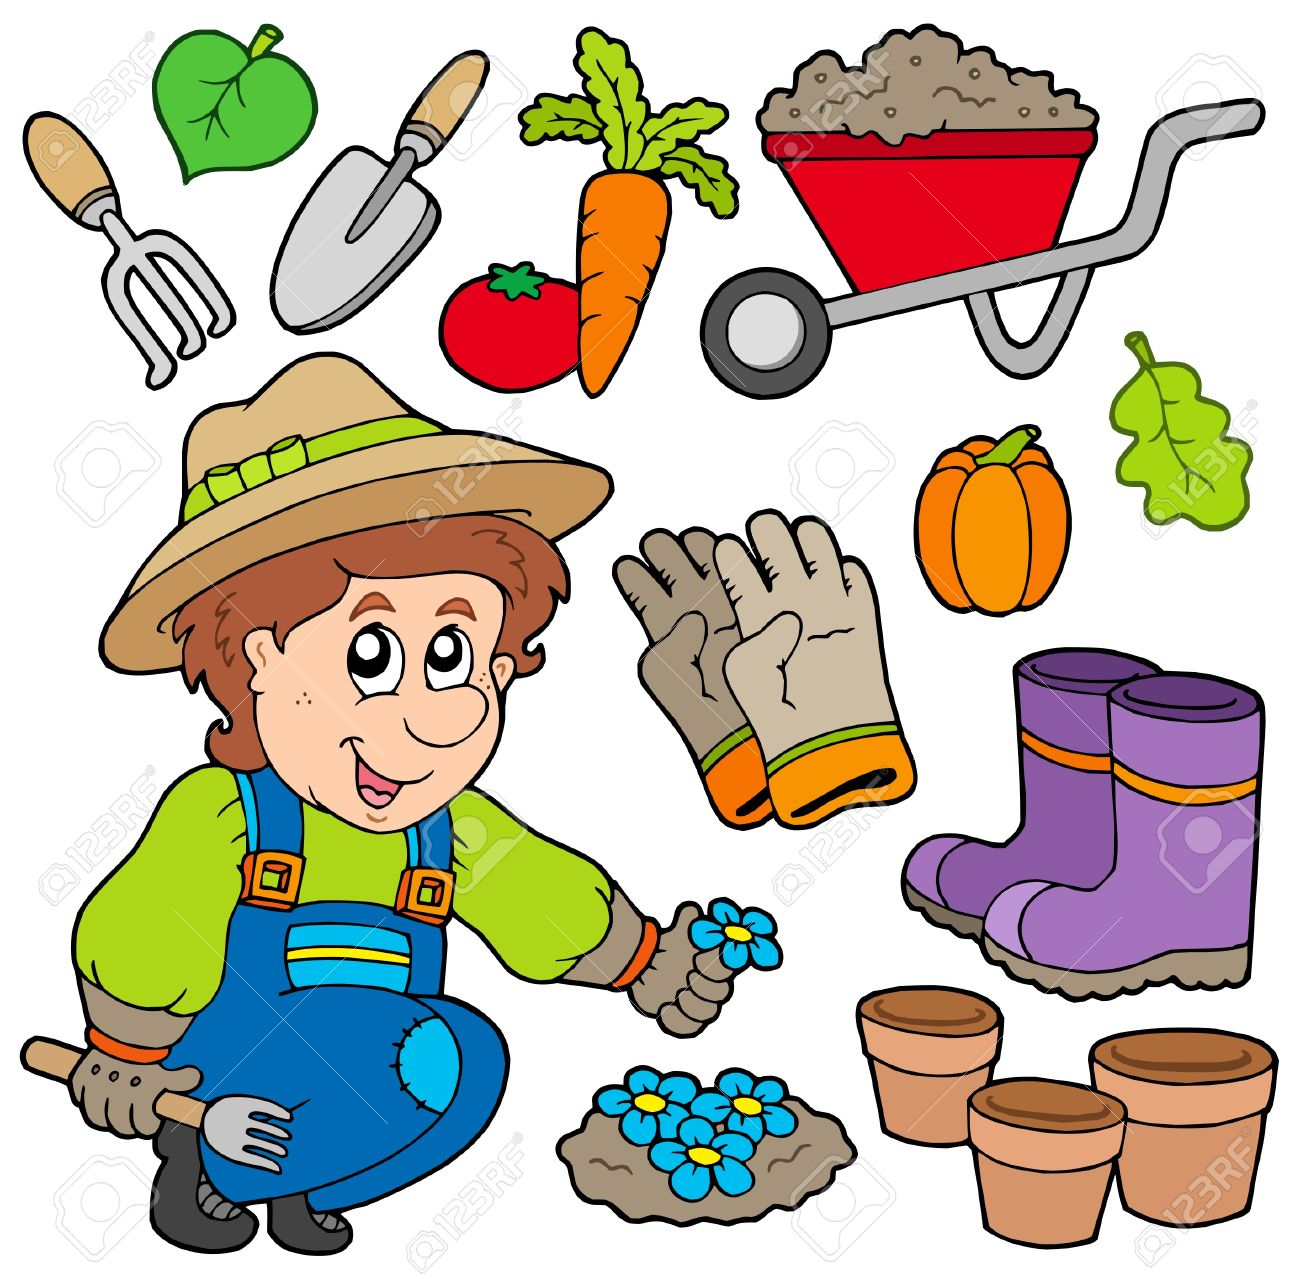 Gardener with various objects Stock Vector - 6335523